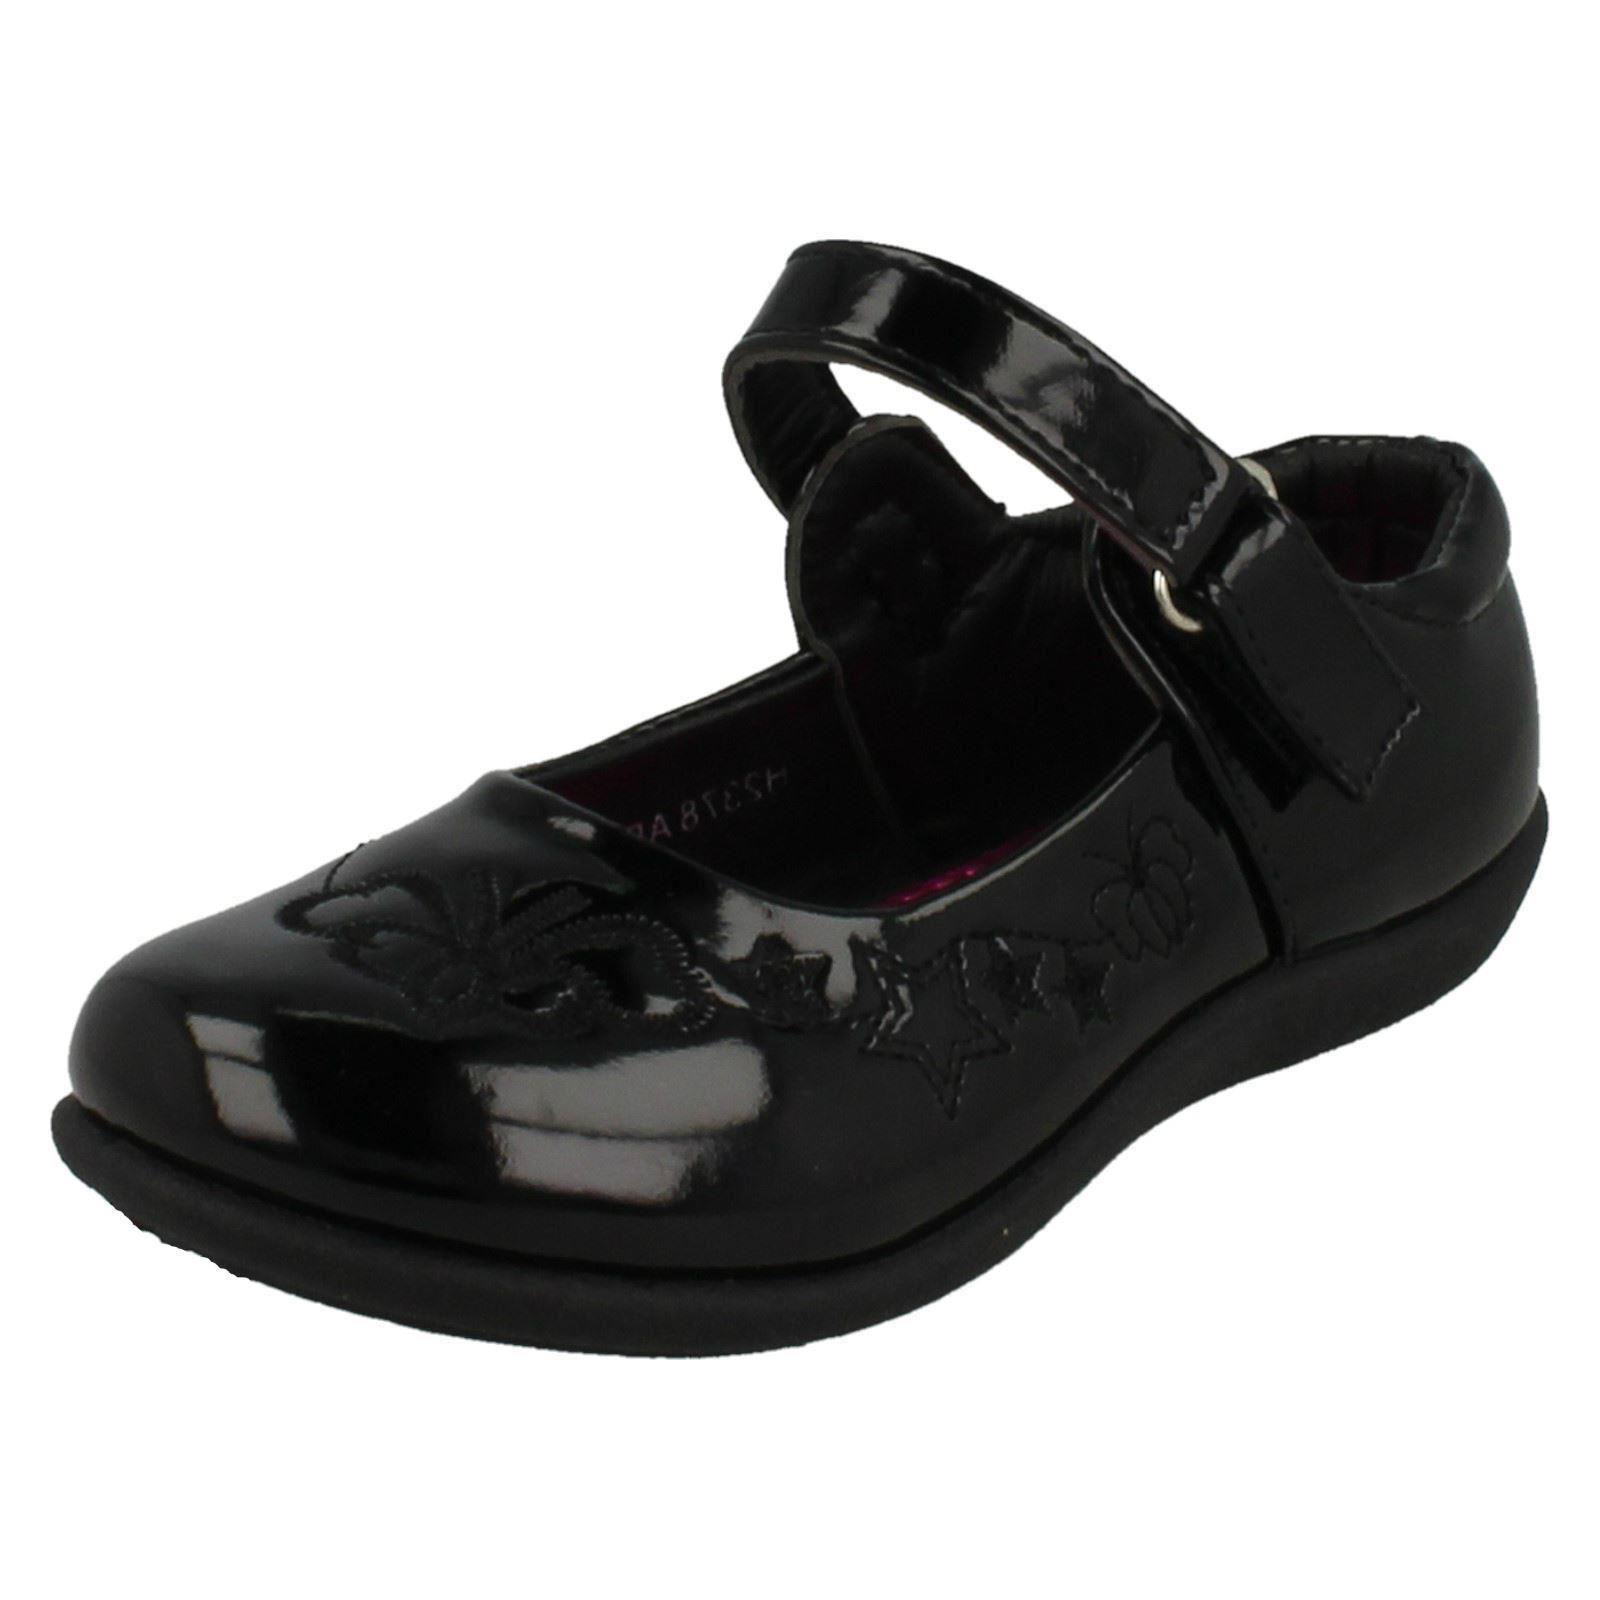 Girls Spoton Formal/School Shoes The Style-H2378